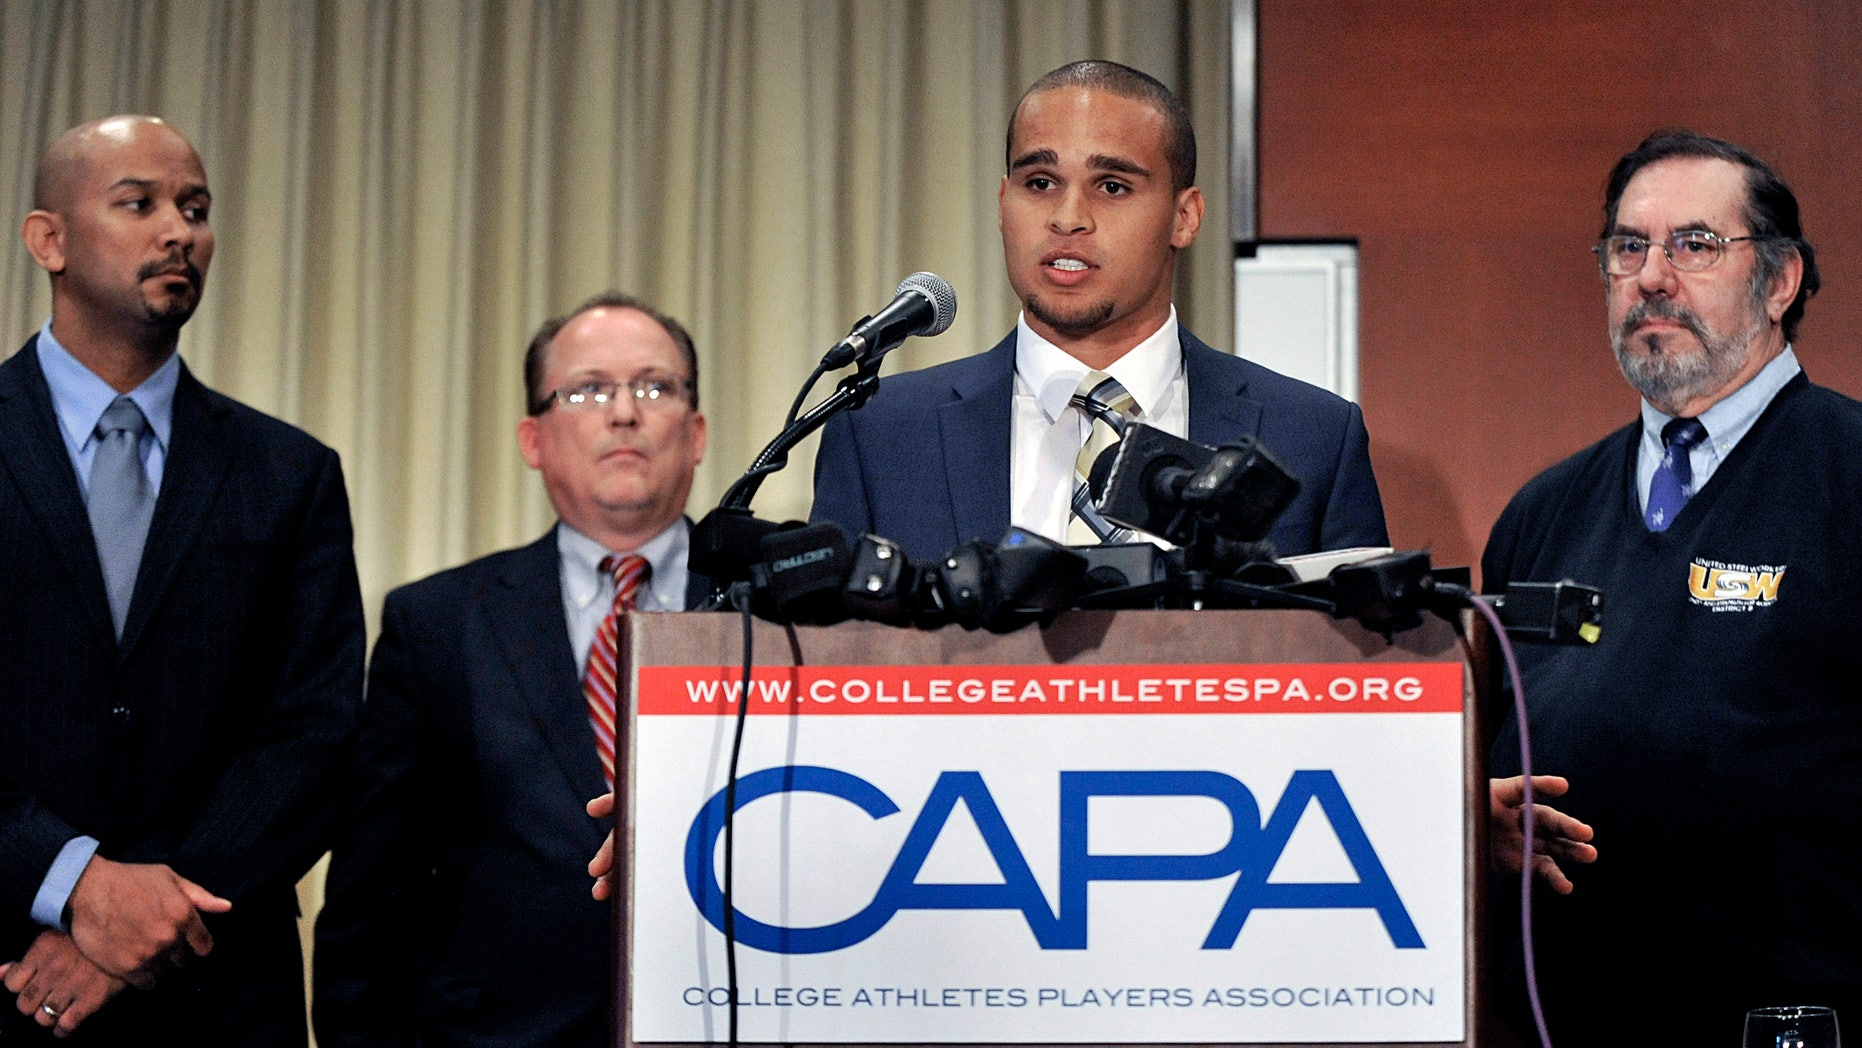 Jan. 28, 2014: Northwestern quarterback Kain Colter second from right, speaks while College Athletes Players Association president Ramogi Huma left, United Steel Workers National Political Director Tim Waters second from left, and United Steel Workers president Leo Gerard right, look on during a news conference in Chicago.